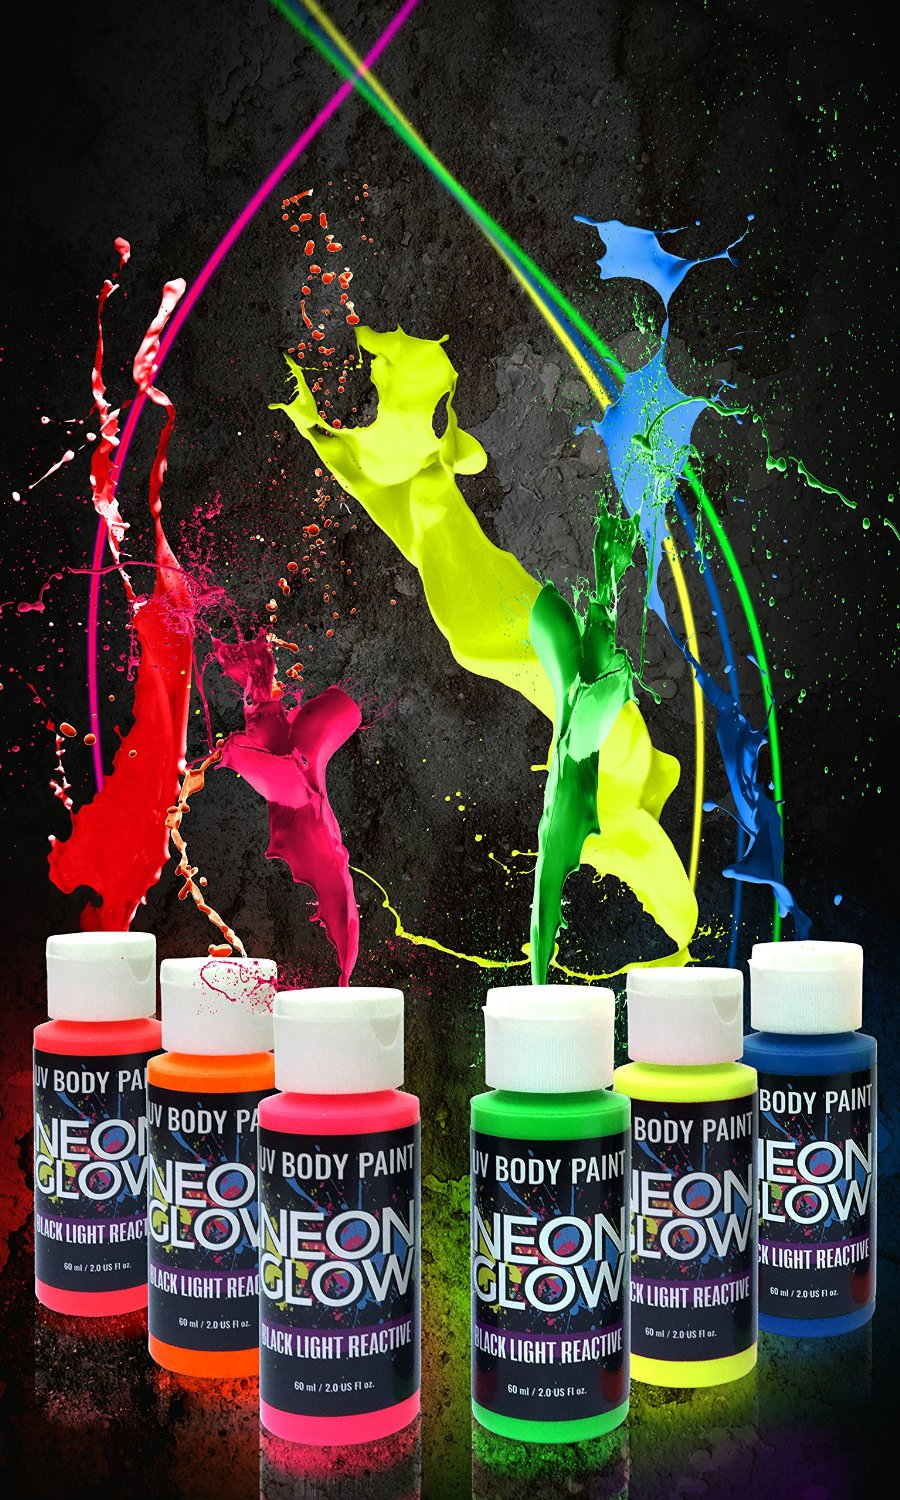 Neon Glow in the dark paint